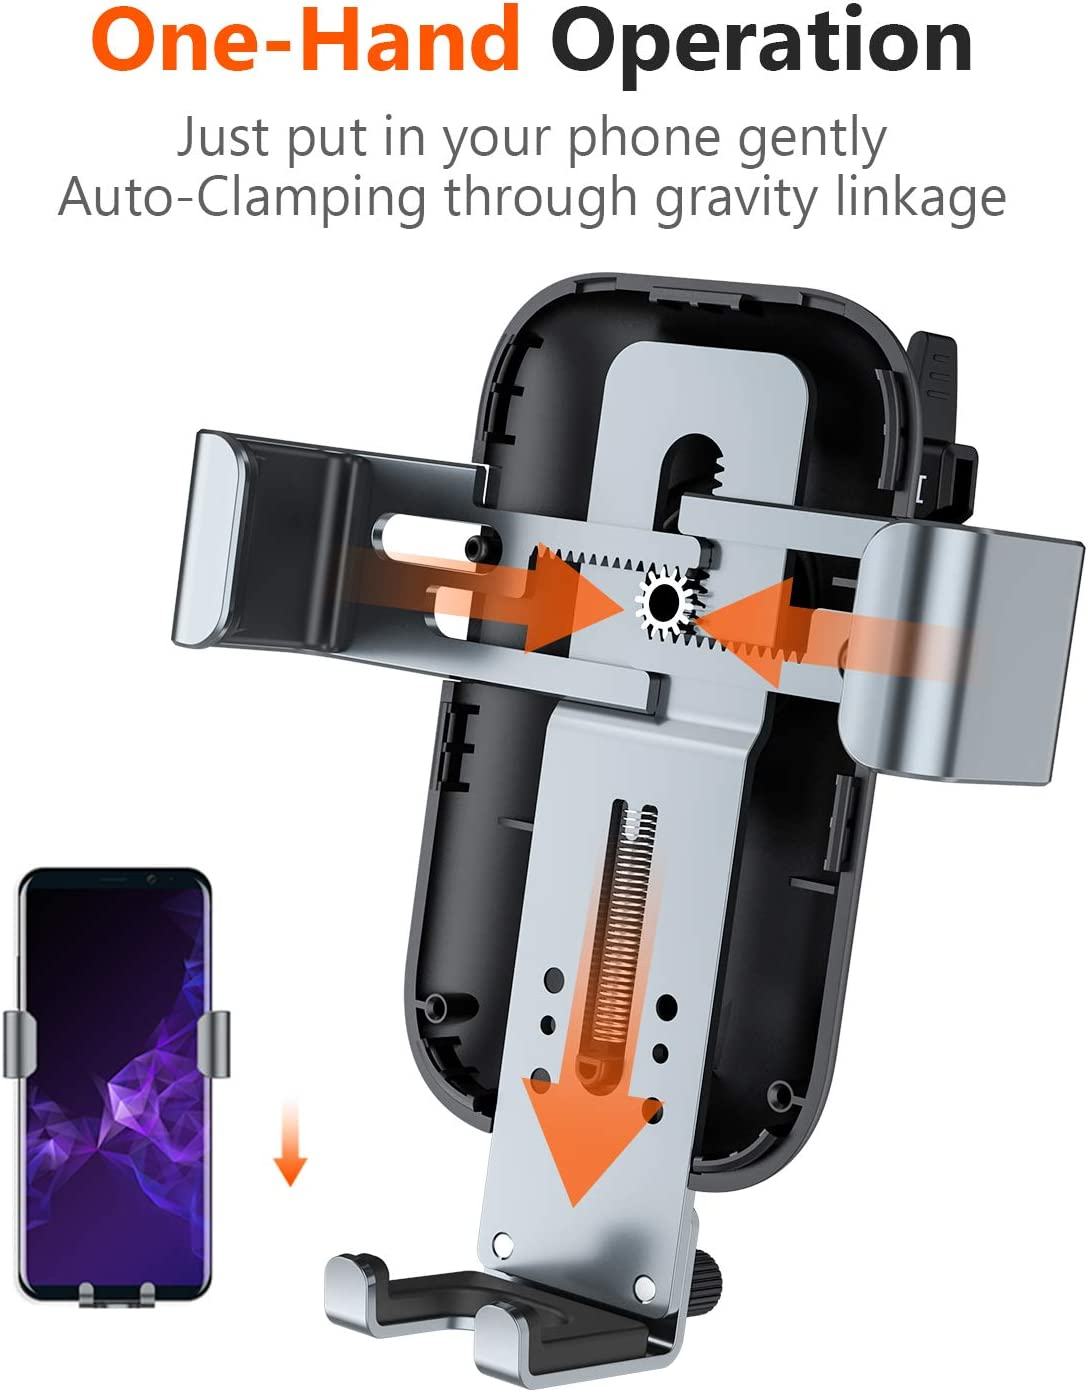 TORRAS Wireless Car Charger Mount More Auto-Clamping Gravity Fast Cell Phone Charger Holder Compatible with iPhone 11 Pro Max//Xs//Xs Max//XR//X // 8//8 Plus Galaxy Note 10 // S10 // S9+ // S8